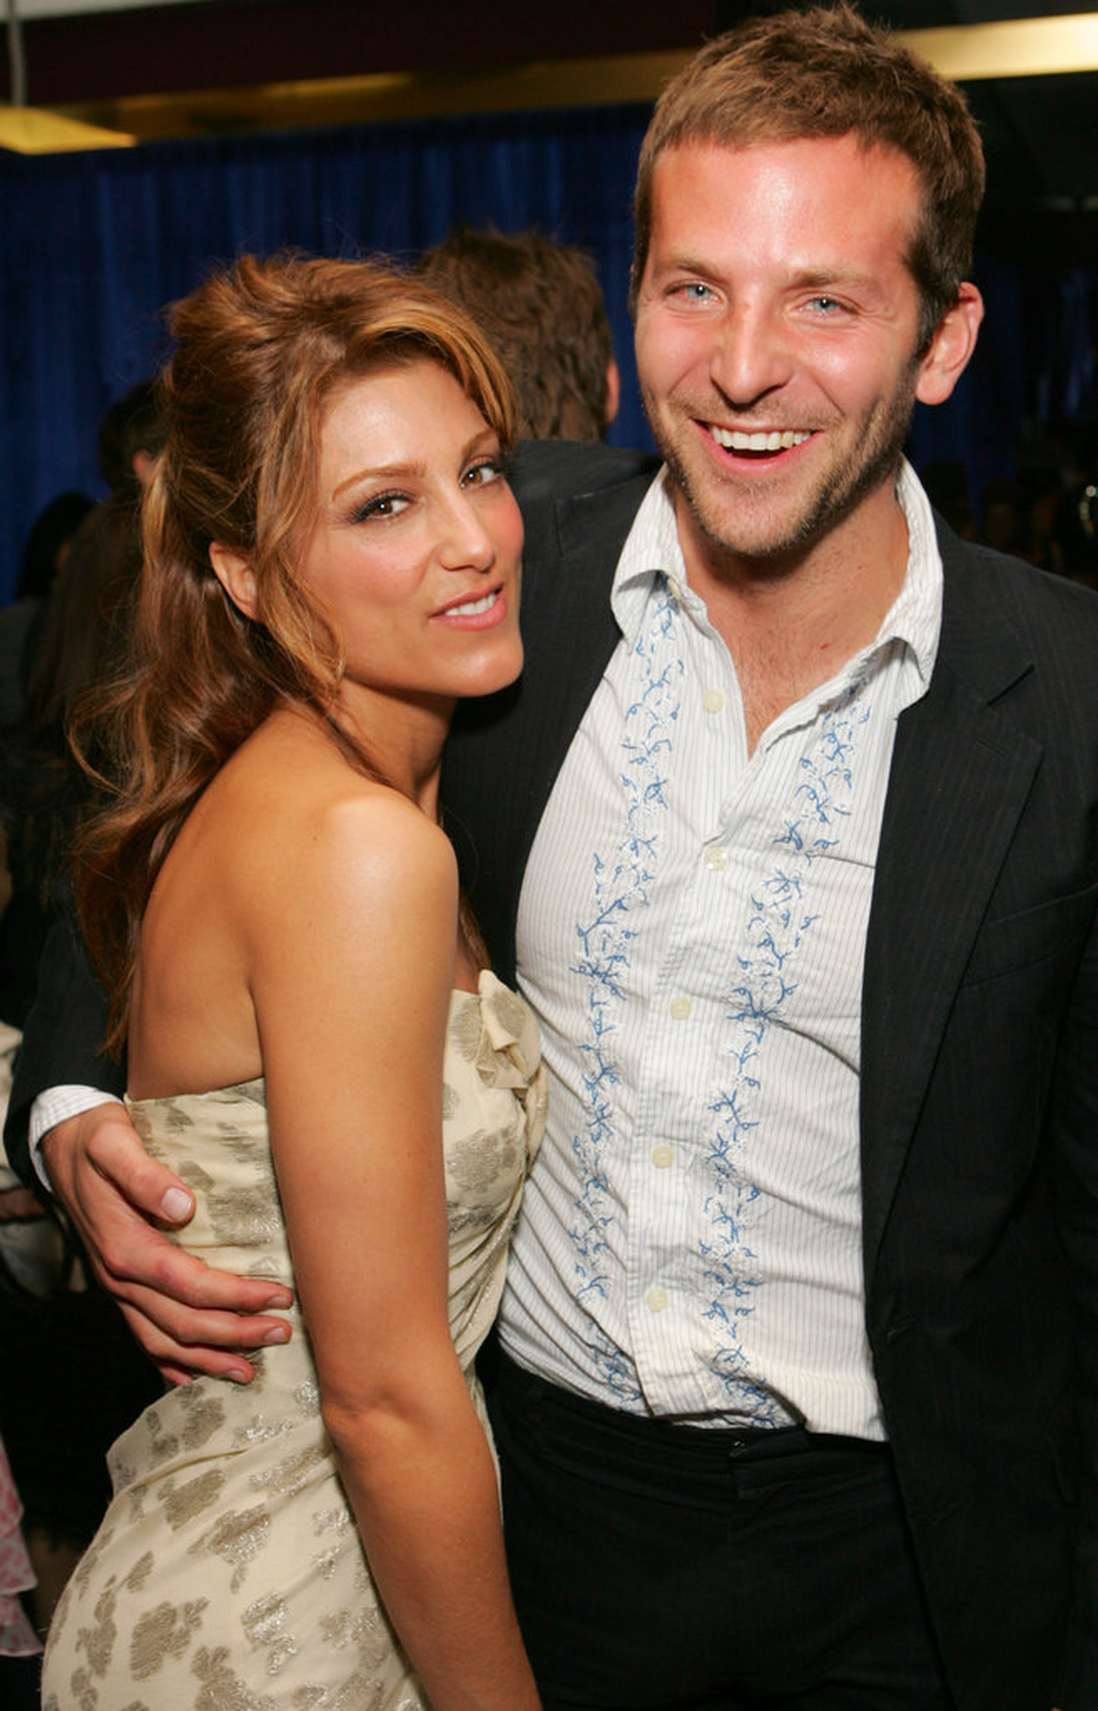 Bradley Cooper And Jennifer Esposito How long did they last Four monthsBradley Cooper called Jennifer Esposito his wife for four months before they broke things